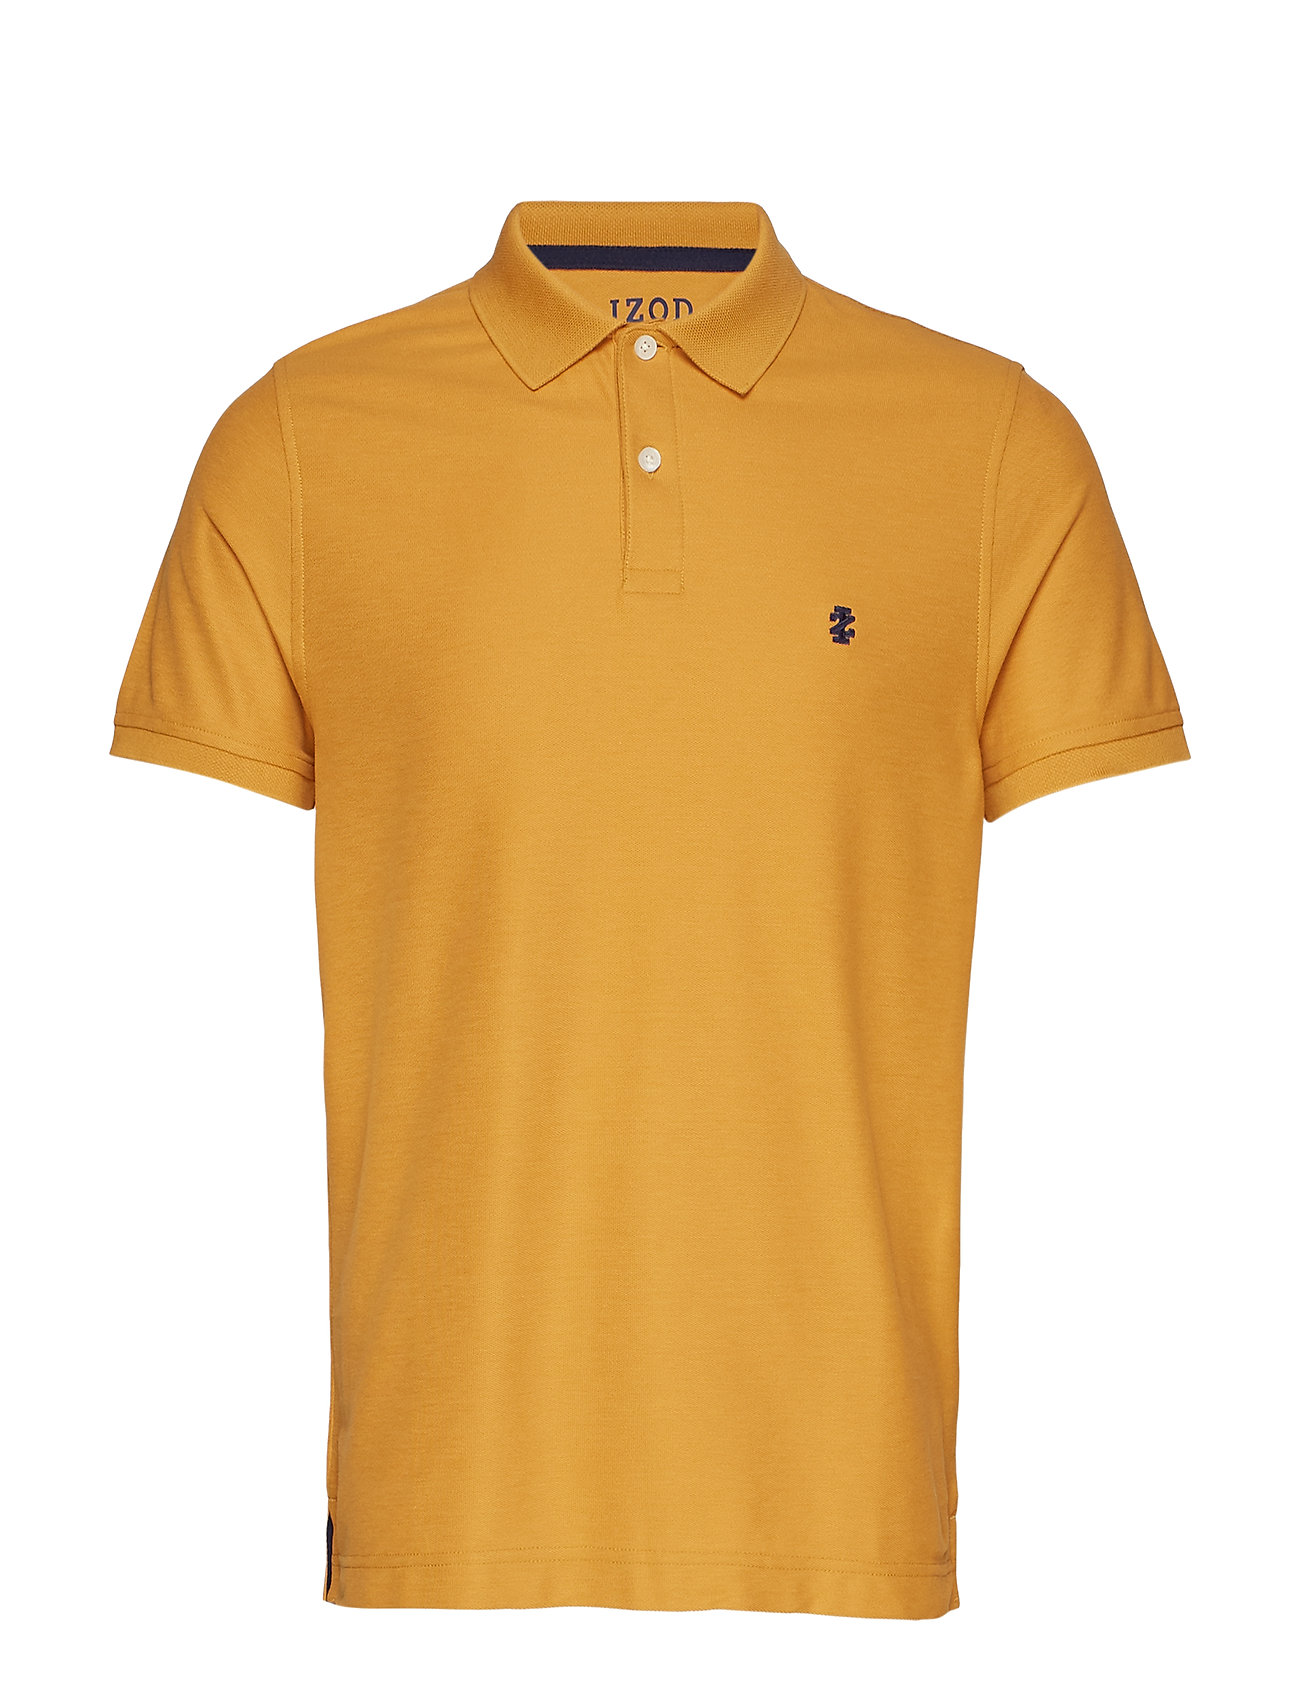 IZOD PERFORMANCE PIQUE POLO - SPRUCE YELLOW